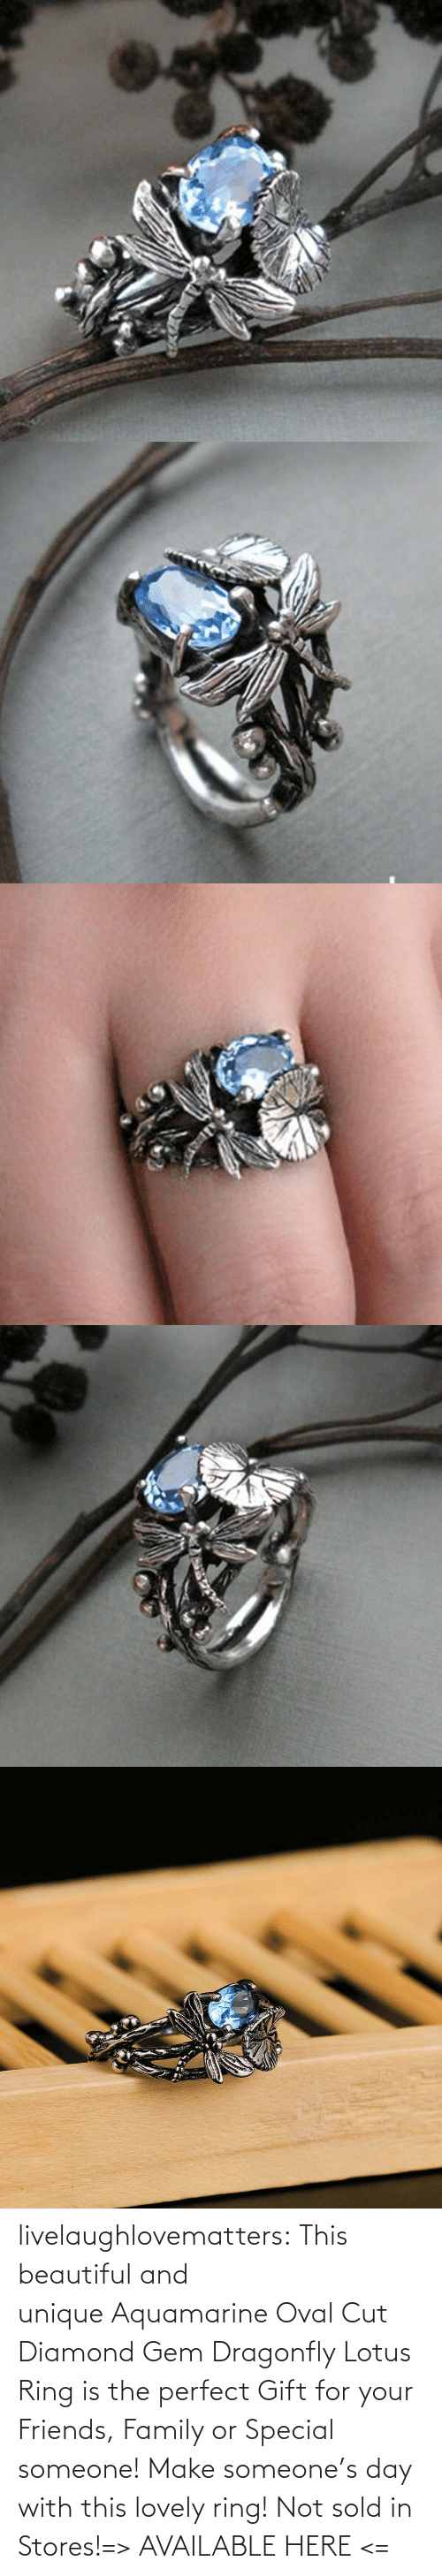 ring: livelaughlovematters:  This beautiful and uniqueAquamarine Oval Cut Diamond Gem Dragonfly Lotus Ring is the perfect Gift for your Friends, Family or Special someone! Make someone's day with this lovely ring! Not sold in Stores!=> AVAILABLE HERE <=